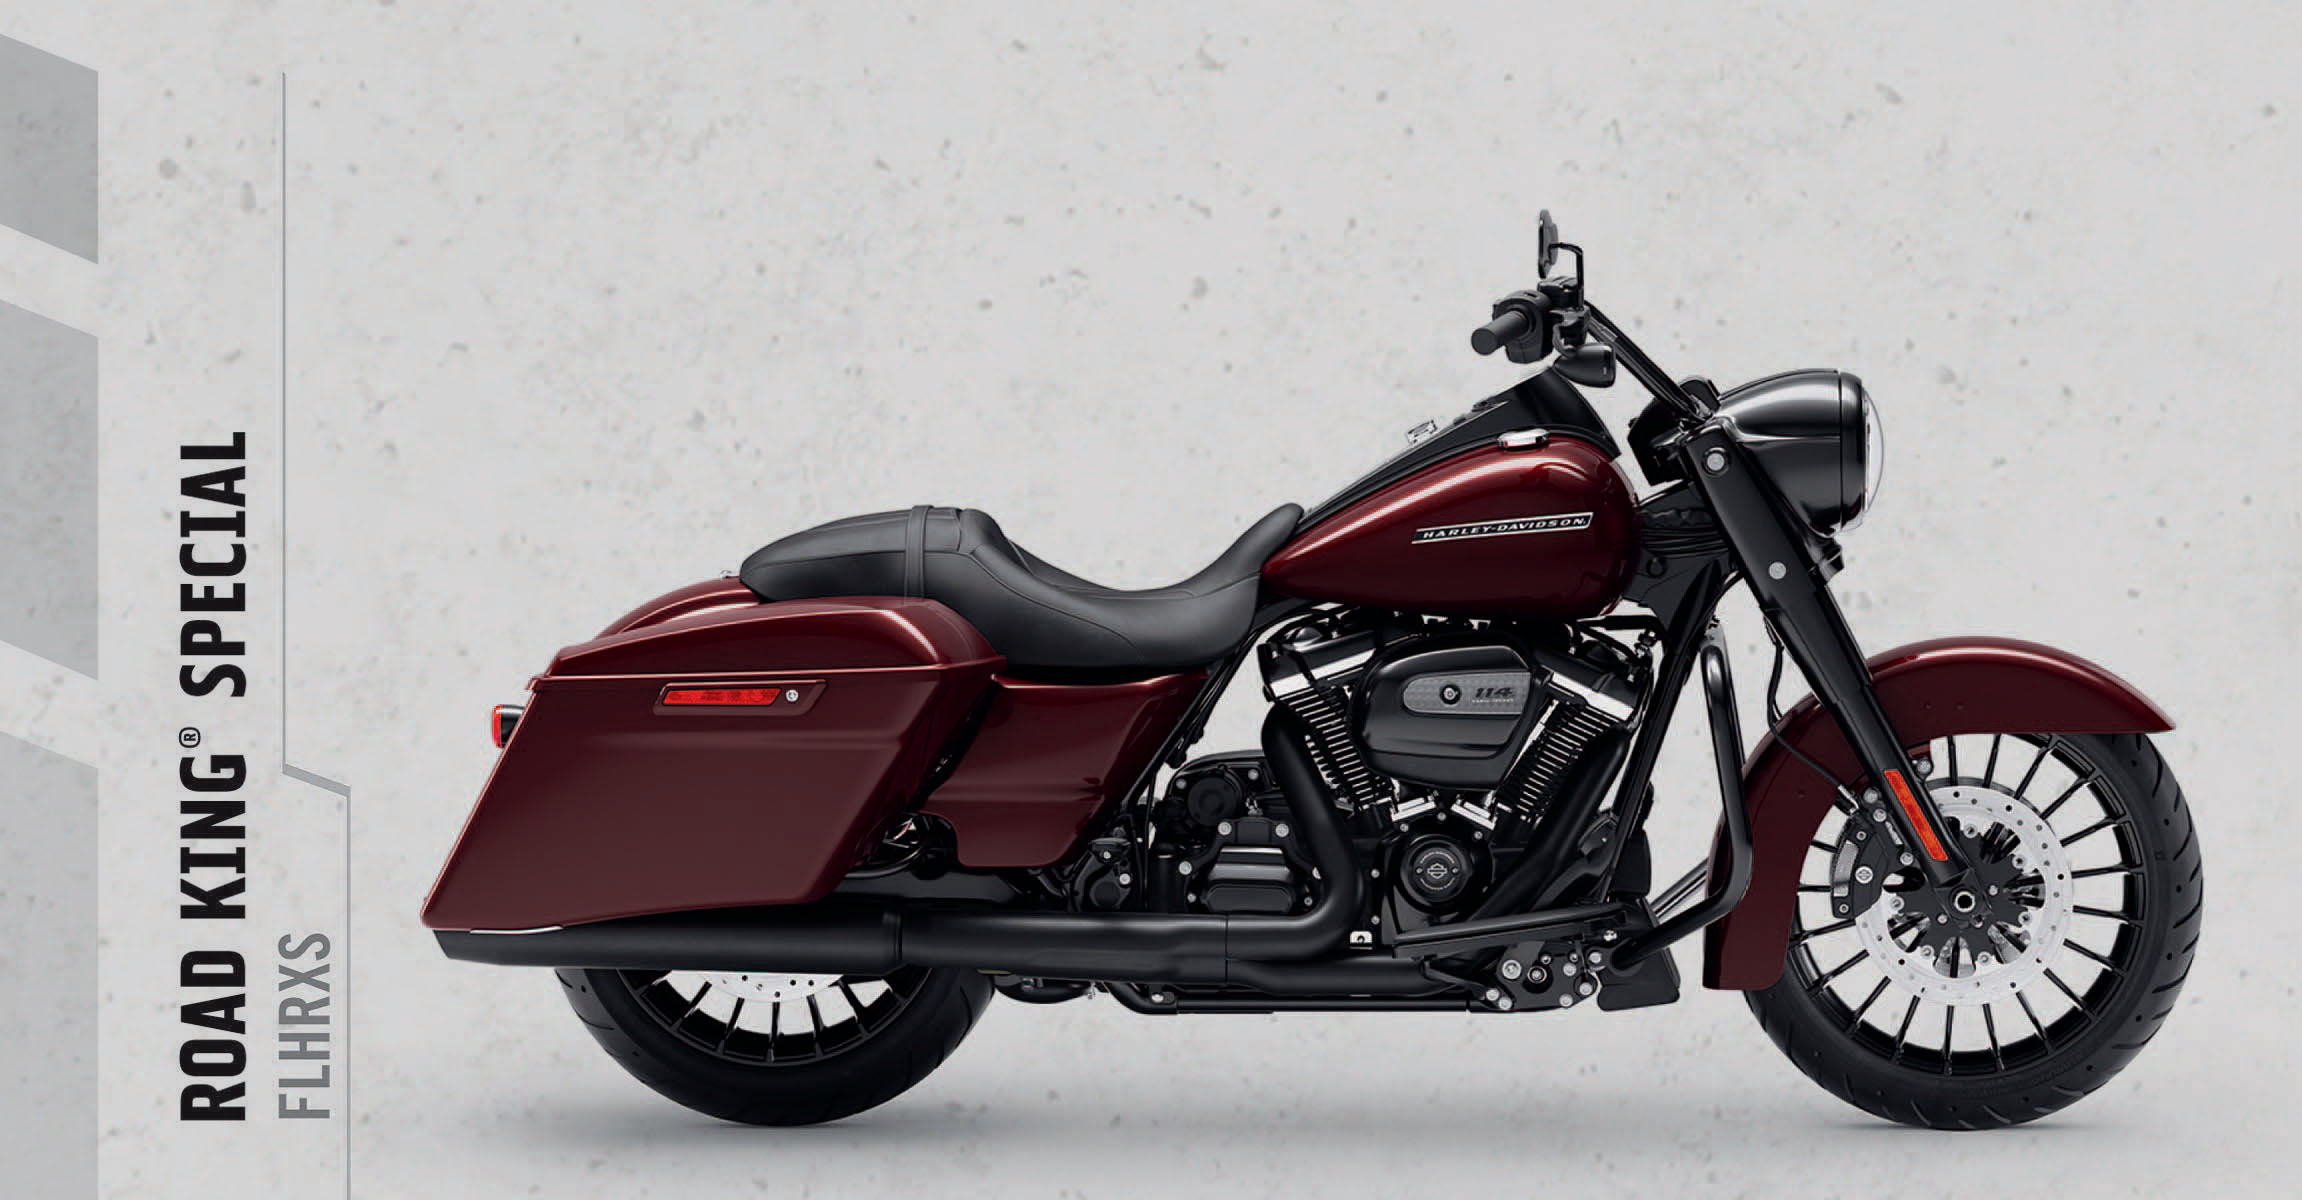 Road King® Special   There's a dark side to our heritage. You're looking at the king of it. You get top-of-the-line power and a blacked-out look that will stop traffic.